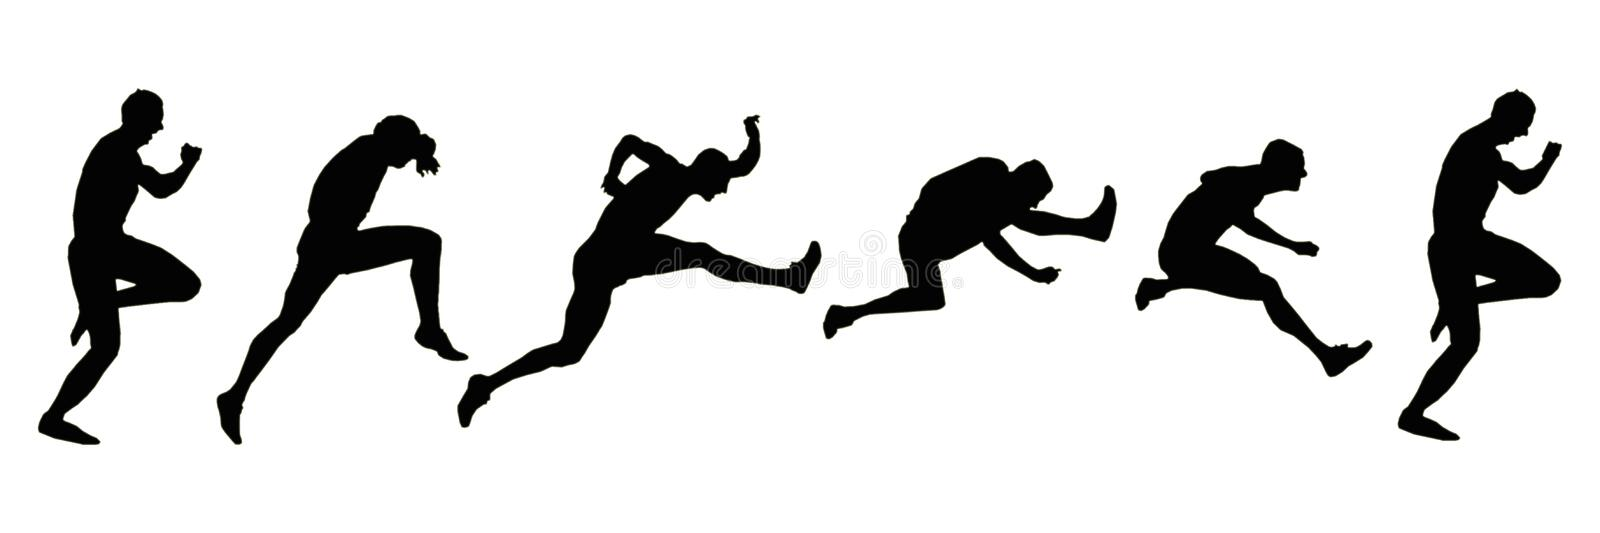 Silhouettes - 110H Attack Sequence royalty free stock photo